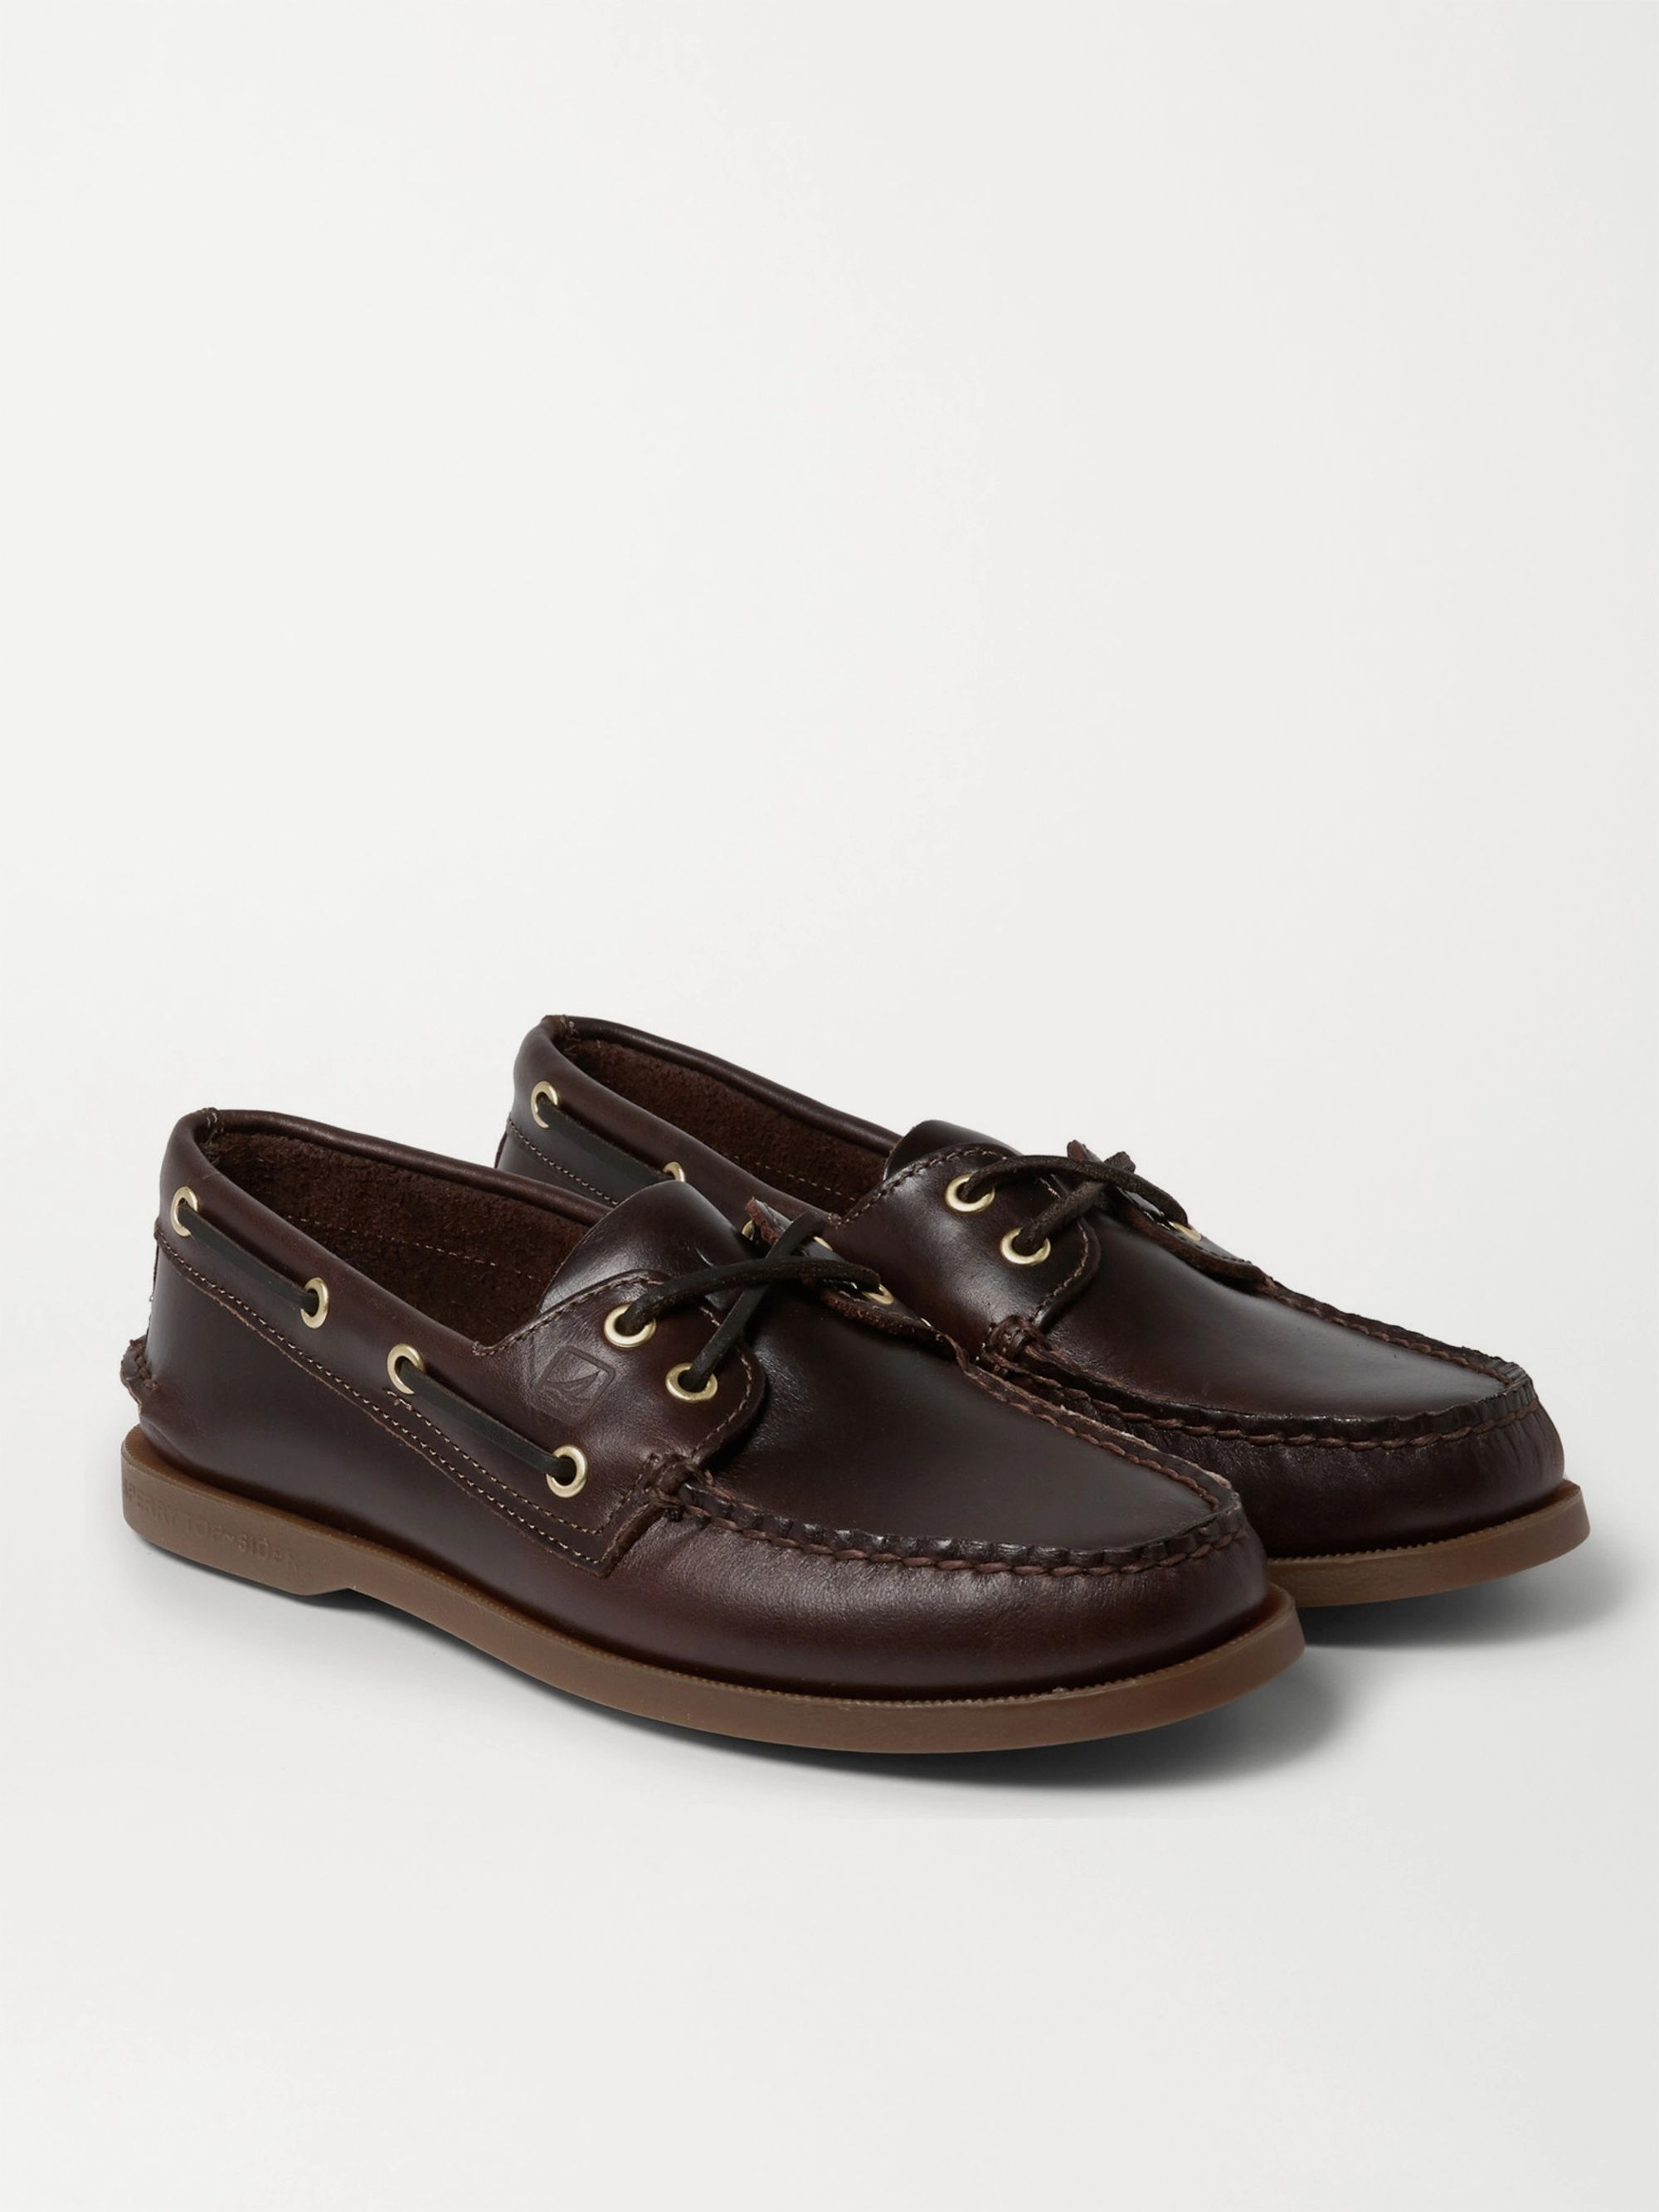 Authentic Original Burnished Leather Boat Shoes